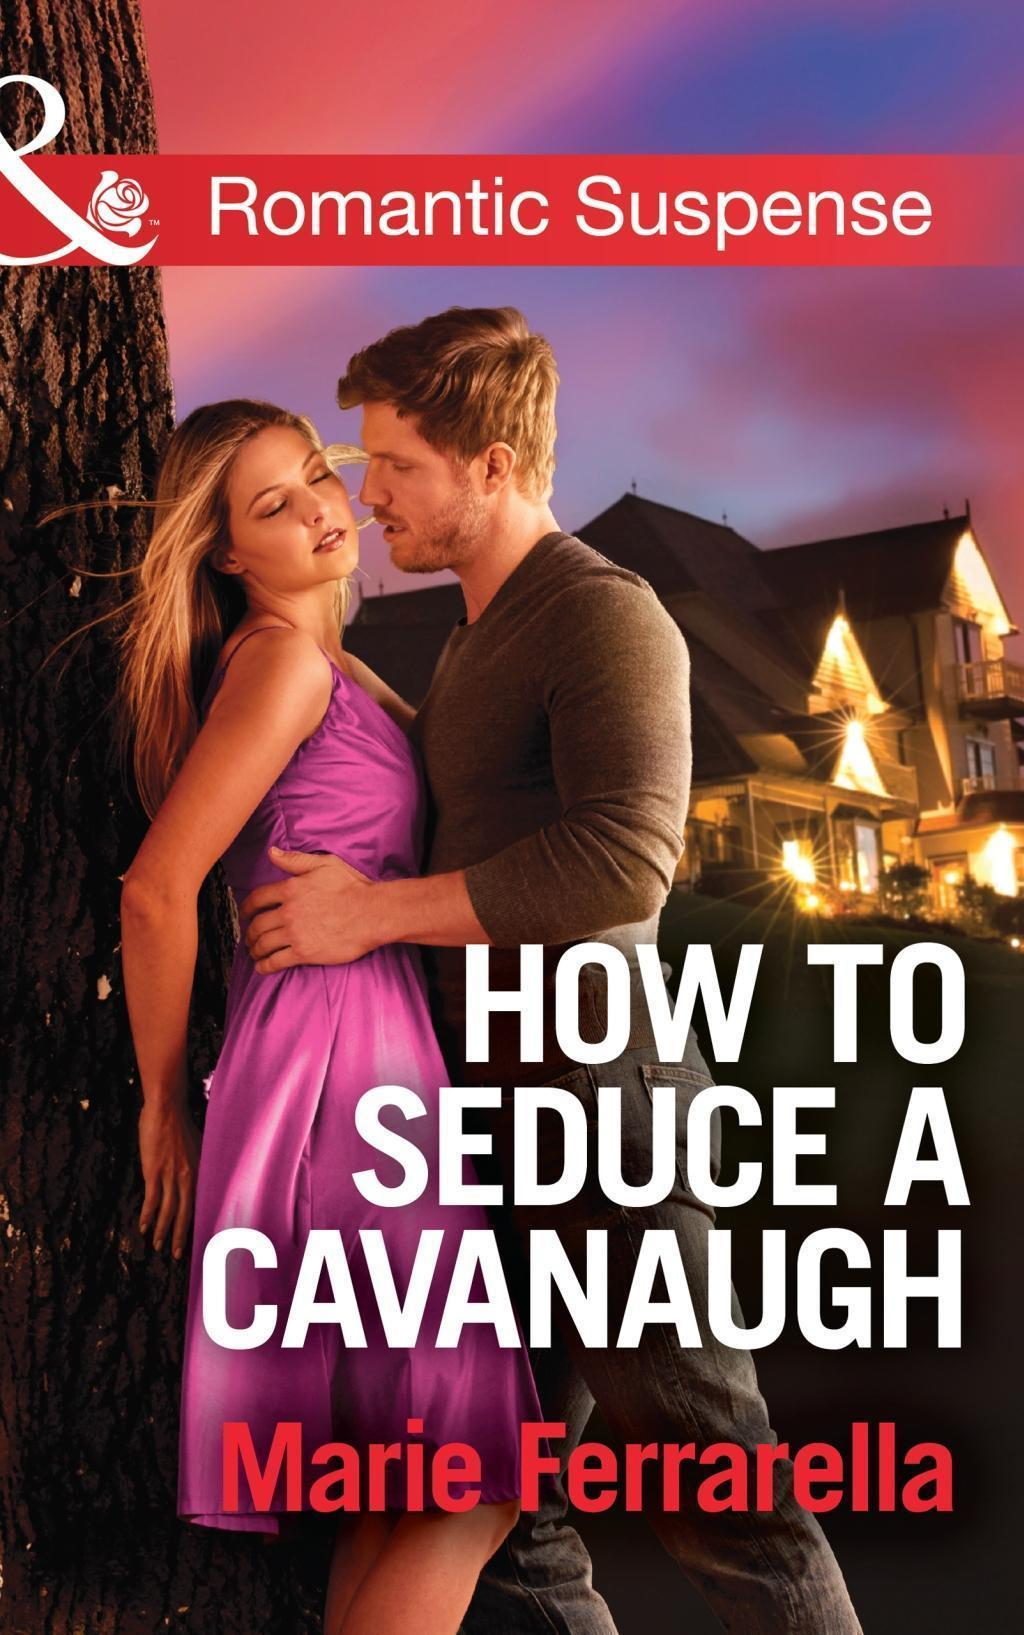 How to Seduce a Cavanaugh (Mills & Boon Romantic Suspense) (Cavanaugh Justice, Book 30)